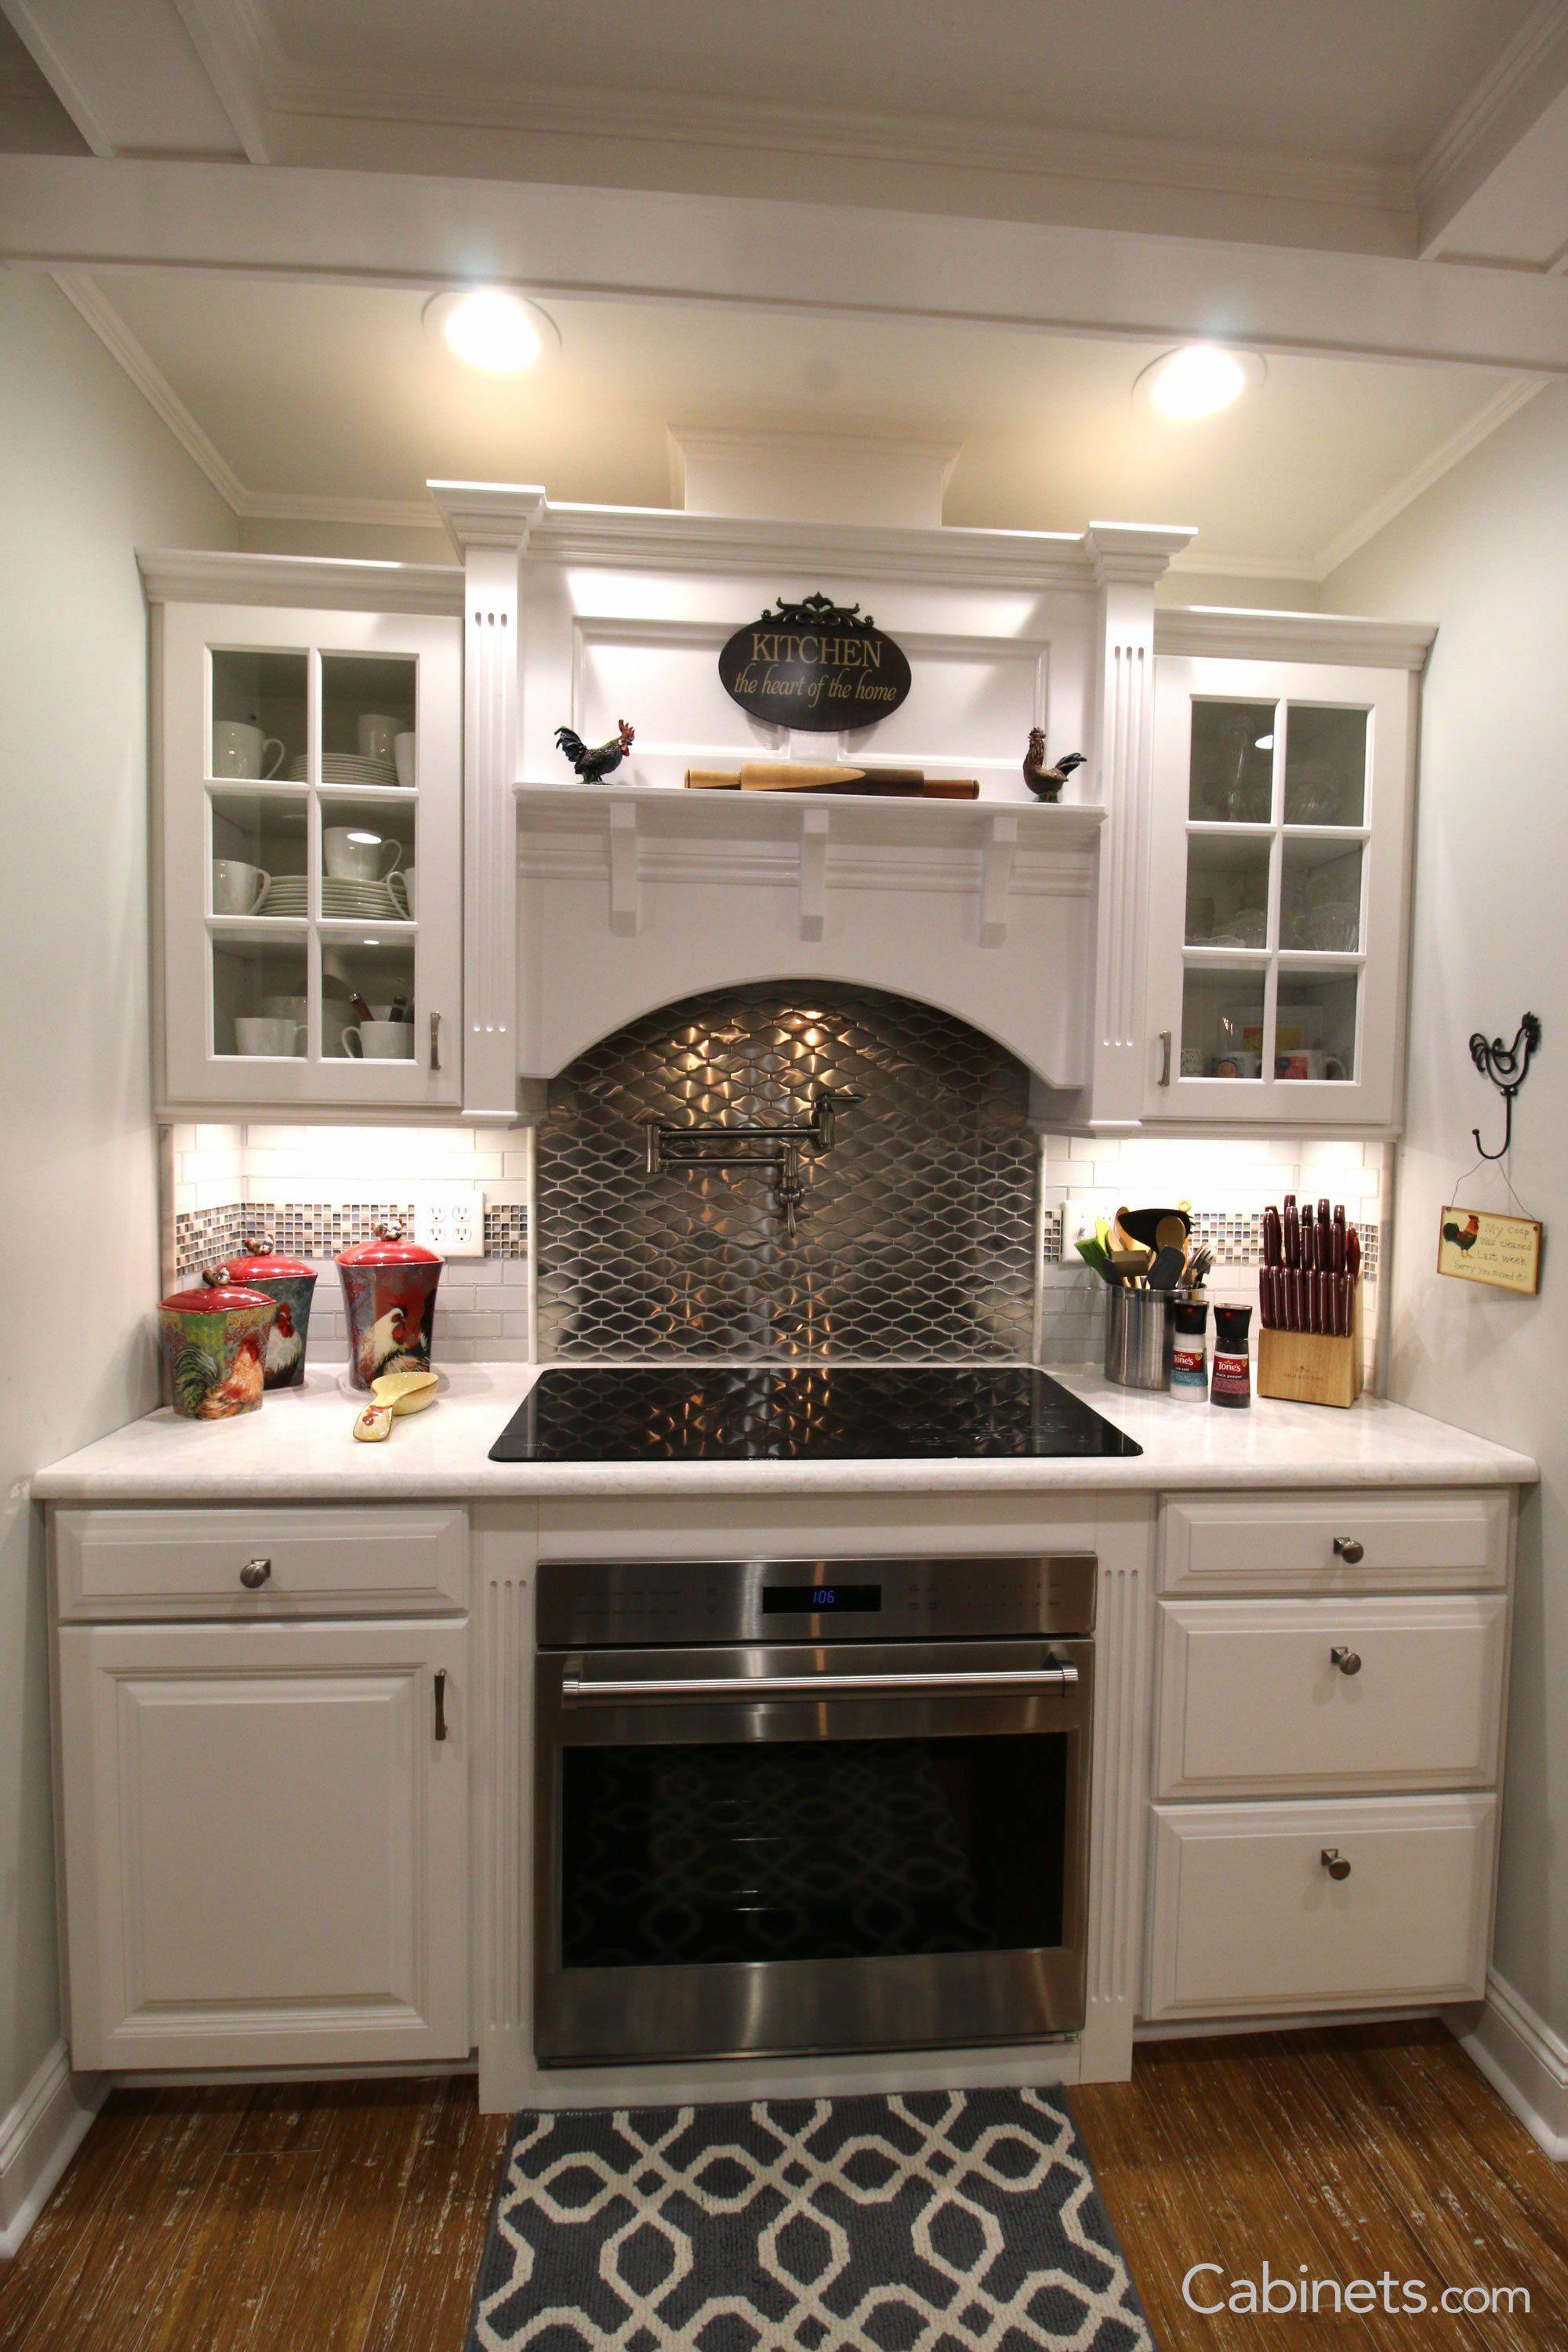 The farmhouse decor around the cooktop and wood hood makes